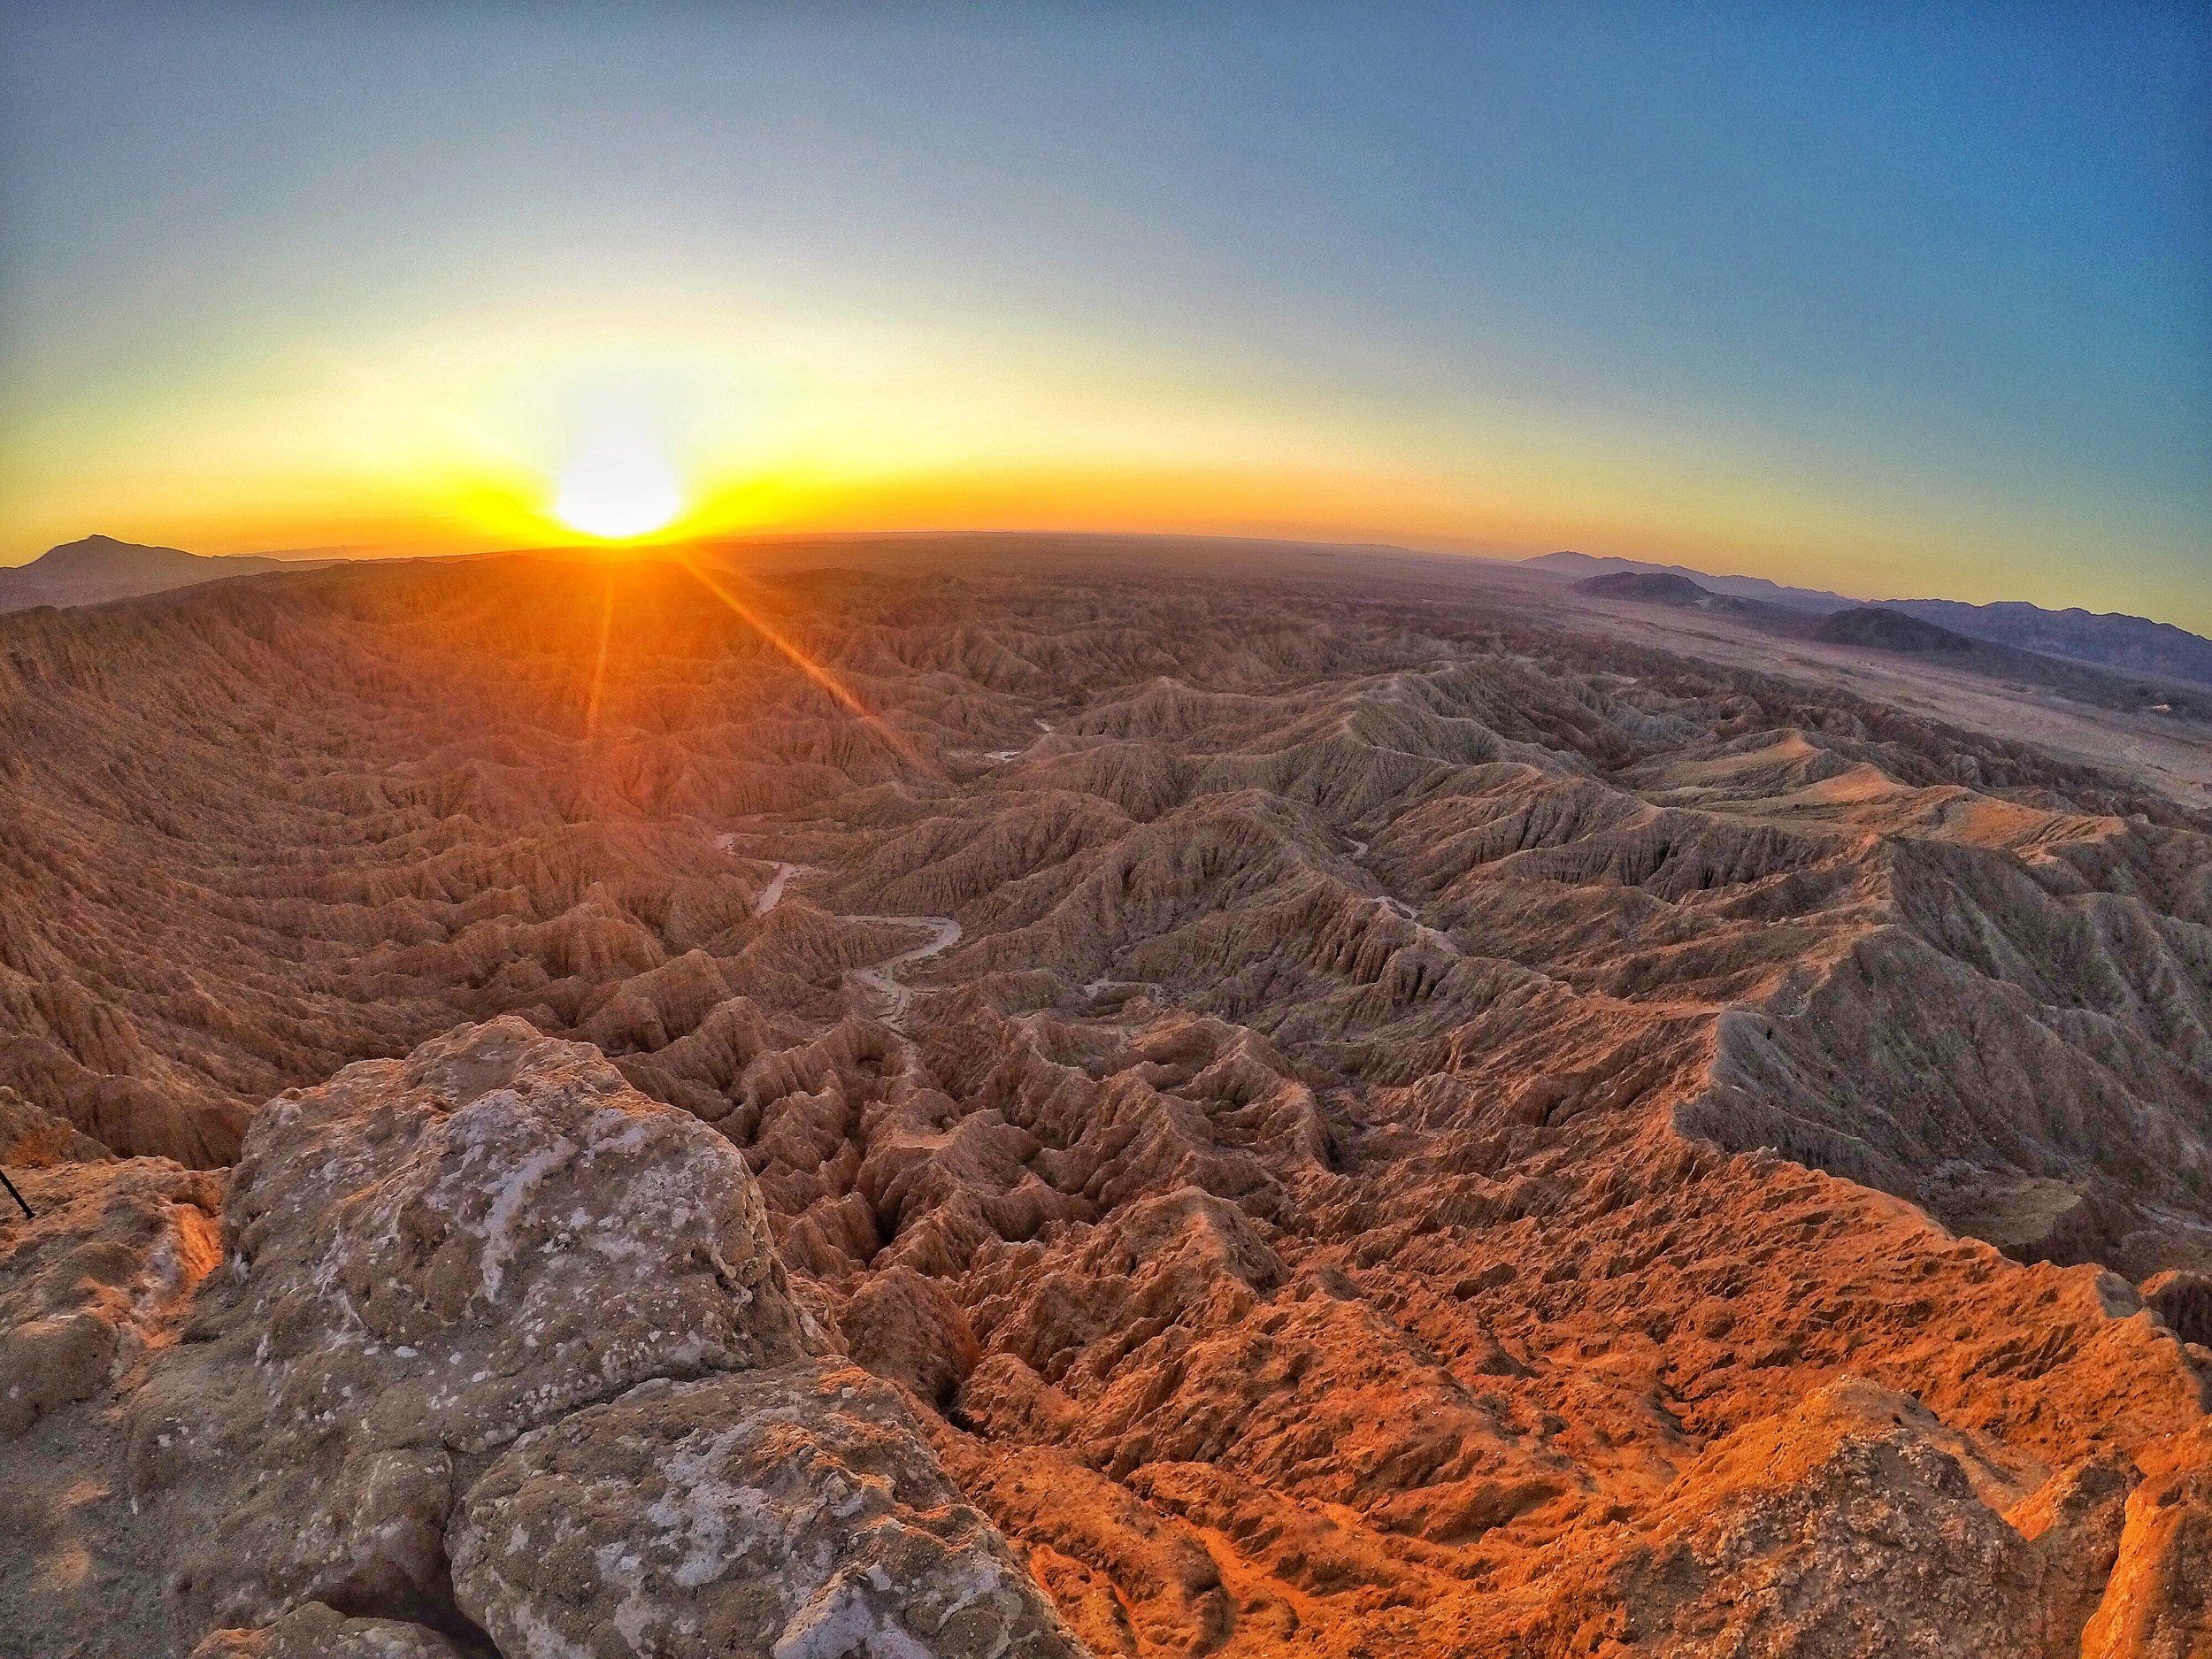 The 1,253 high point has great views of the Borrego Badlands, and the majority of the state park.